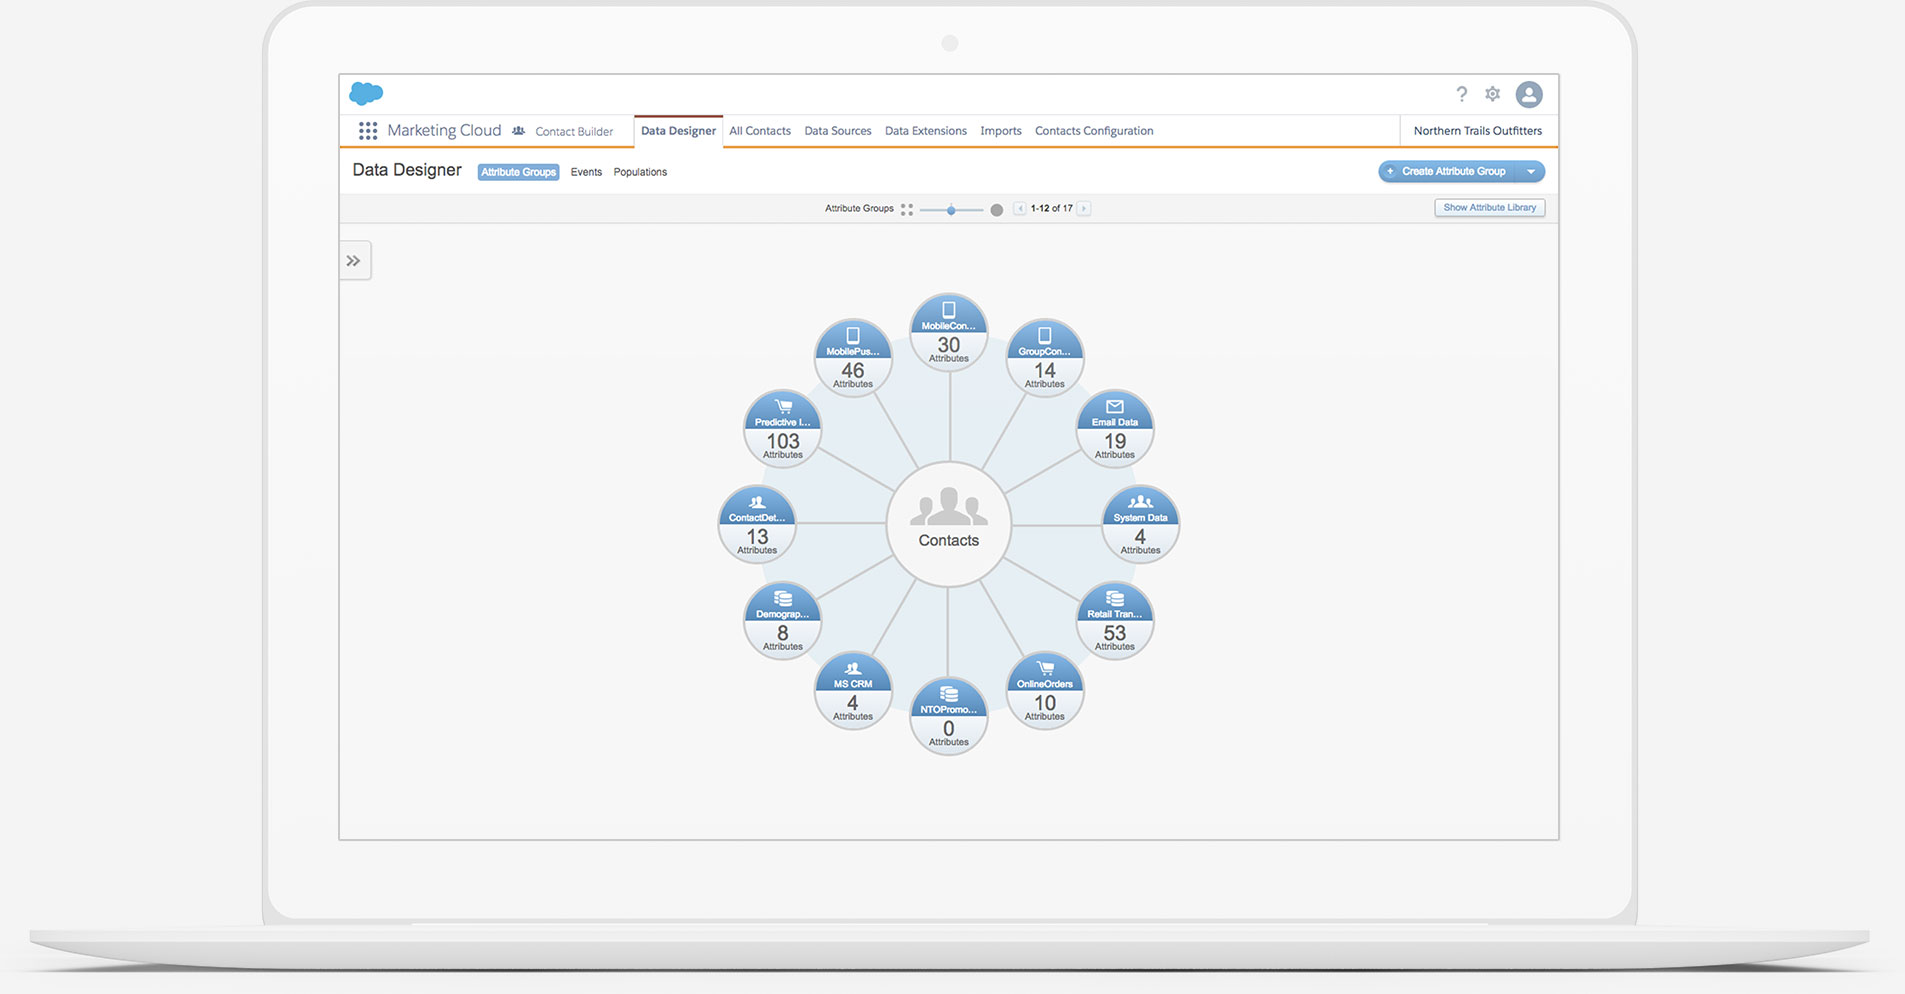 Contact Management from Salesforce Marketing Cloud